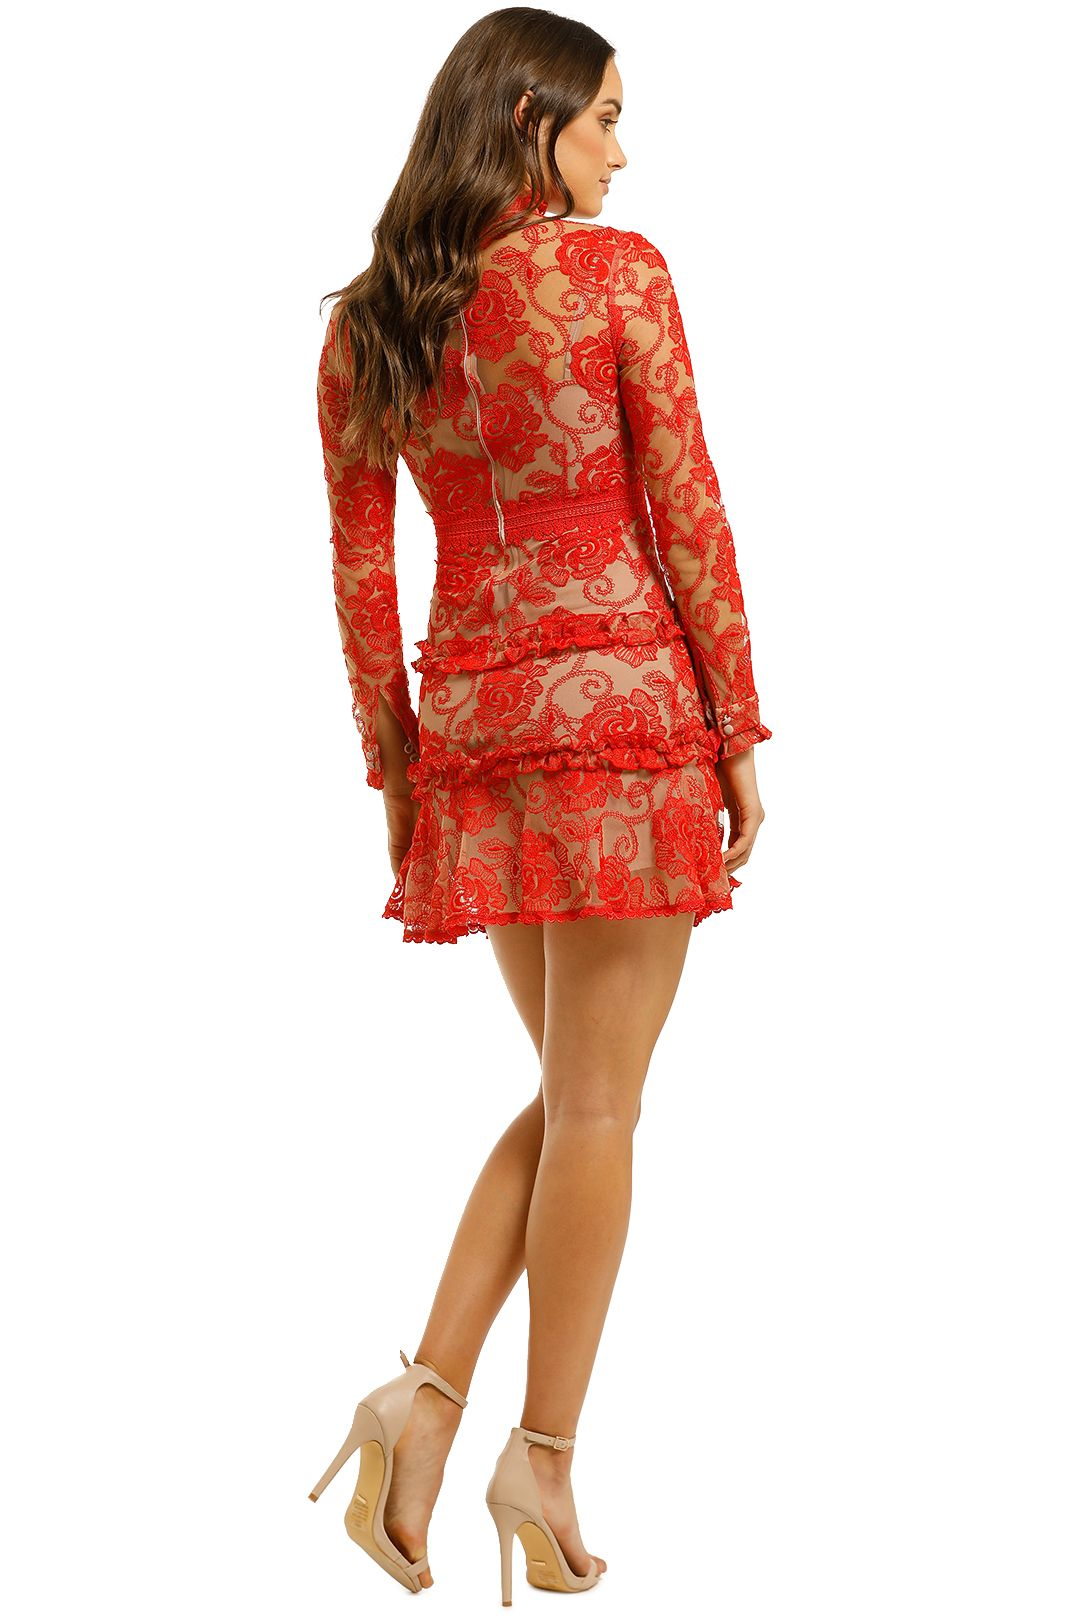 Nicholas-The-Label-Rosie-Lace-High-Neck-Red-Back